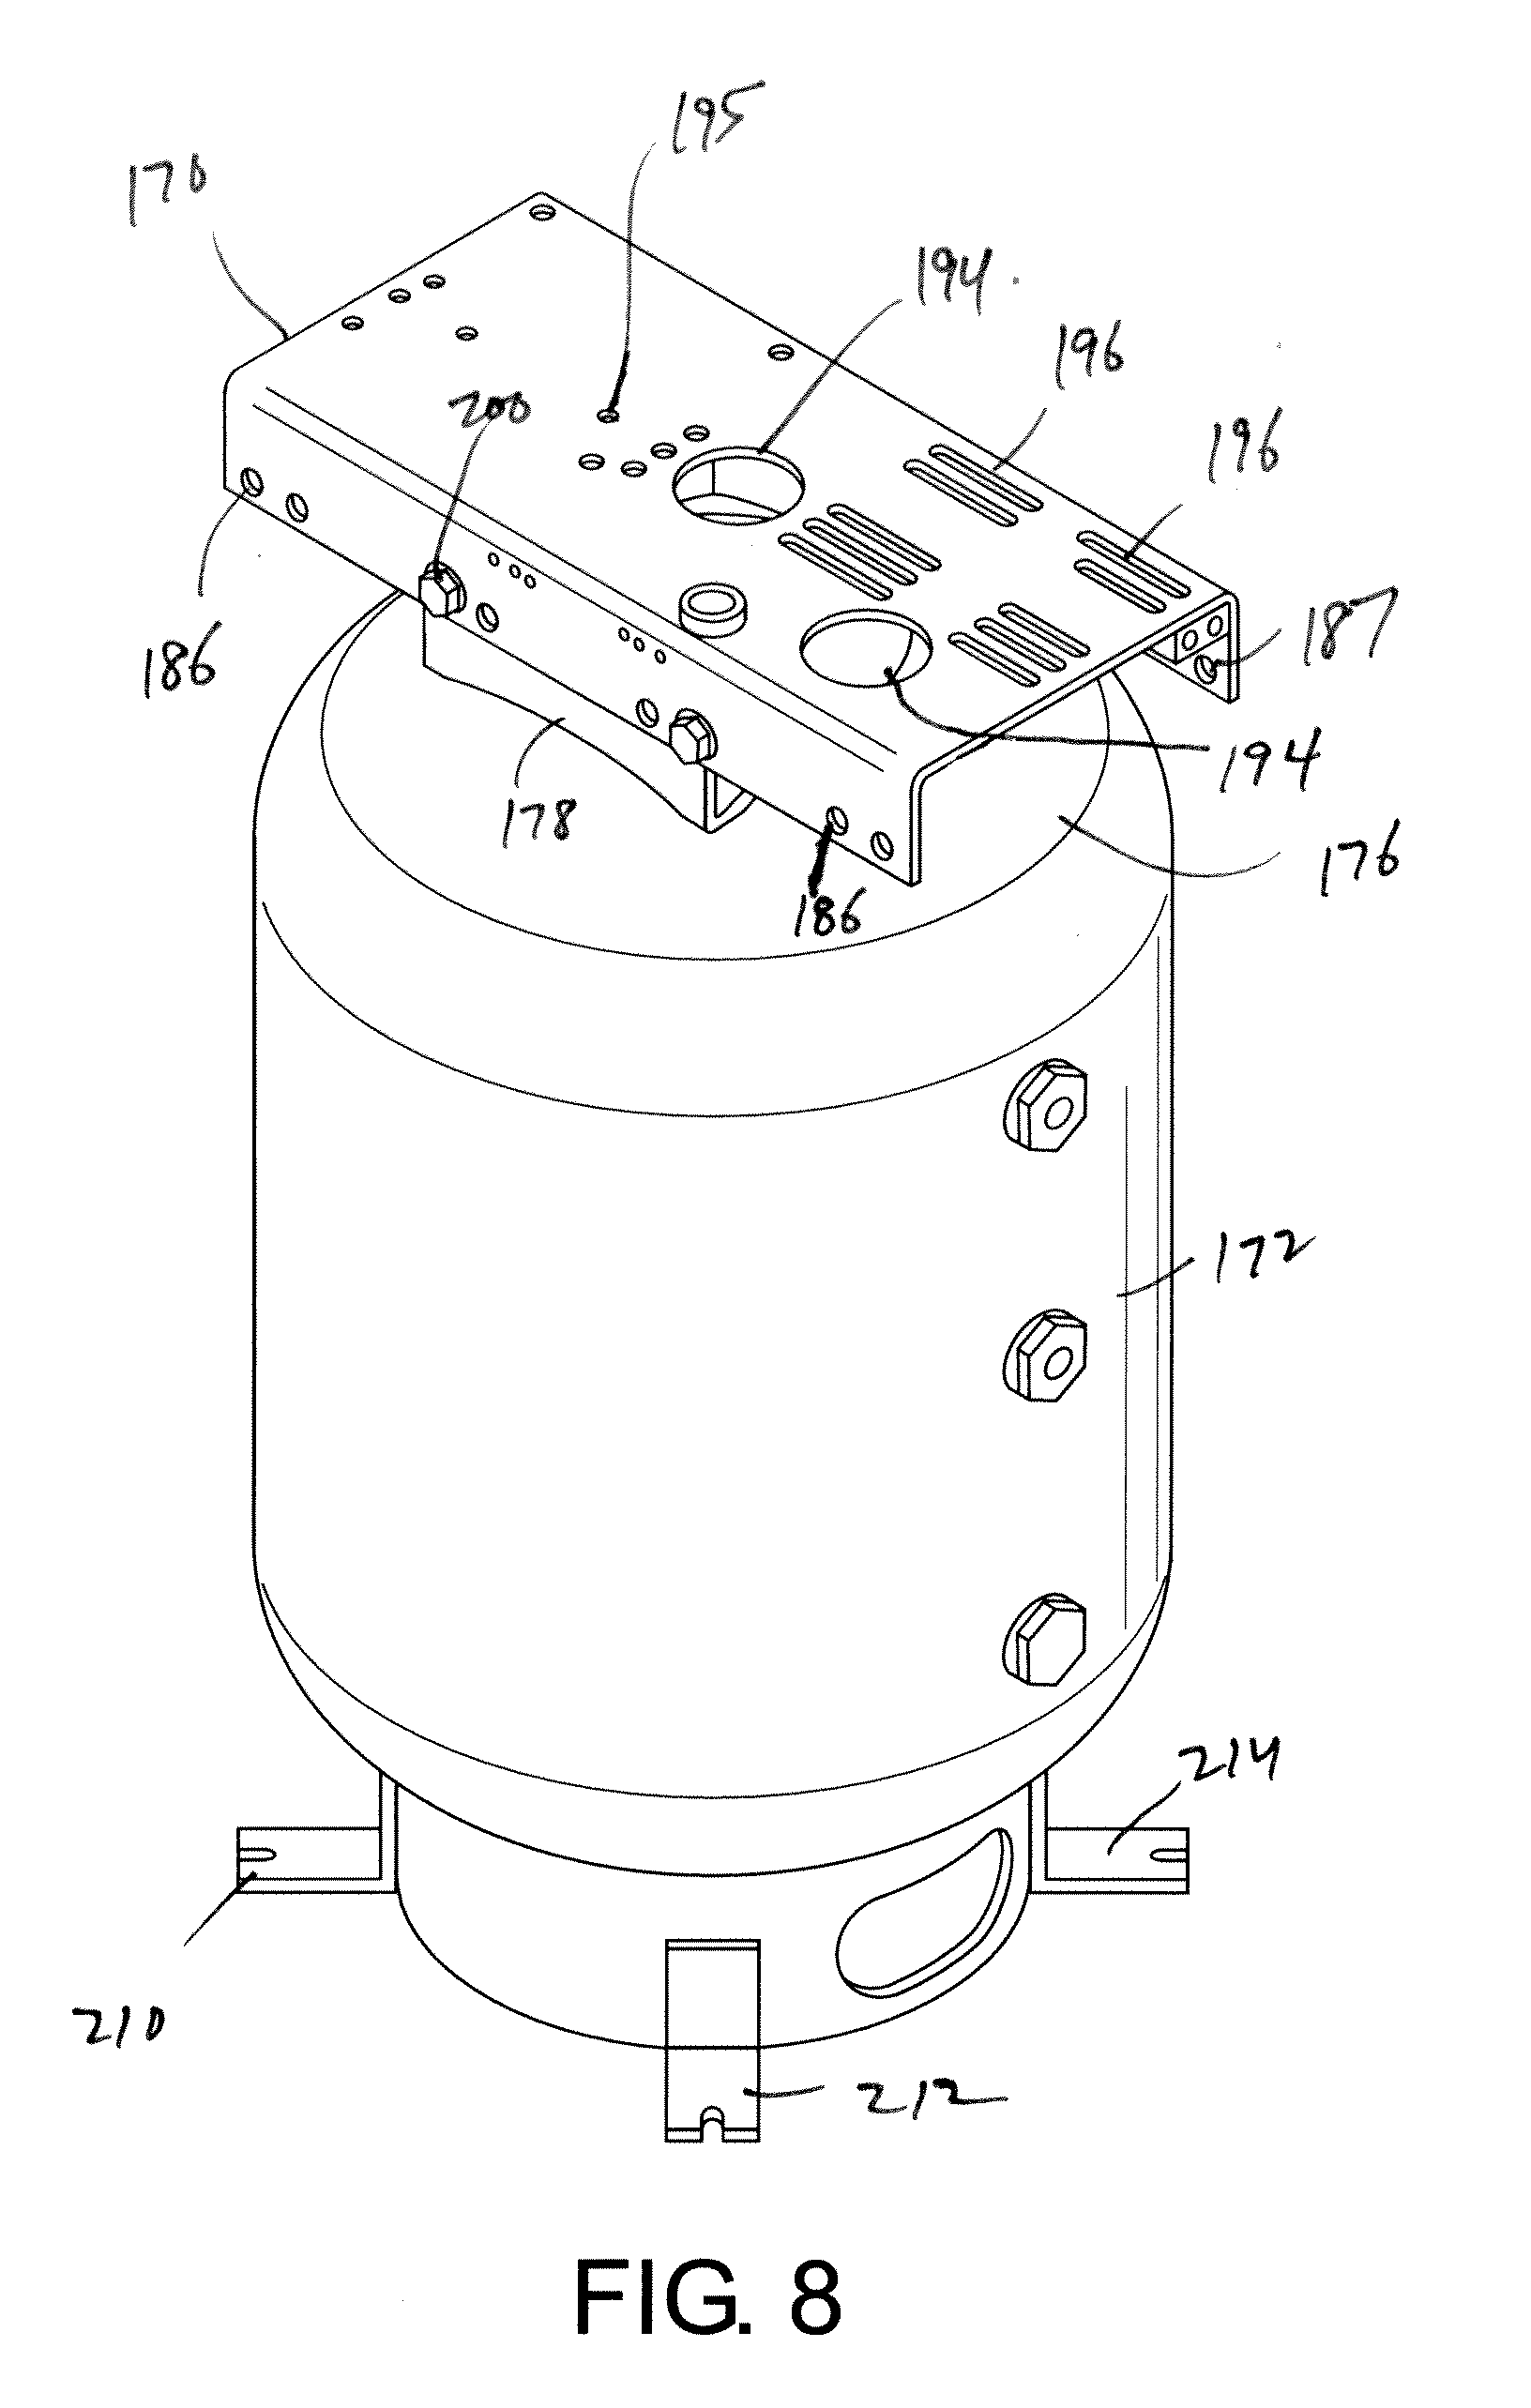 Fuse Box Diagram On International Truck Ignition Switch Diagram